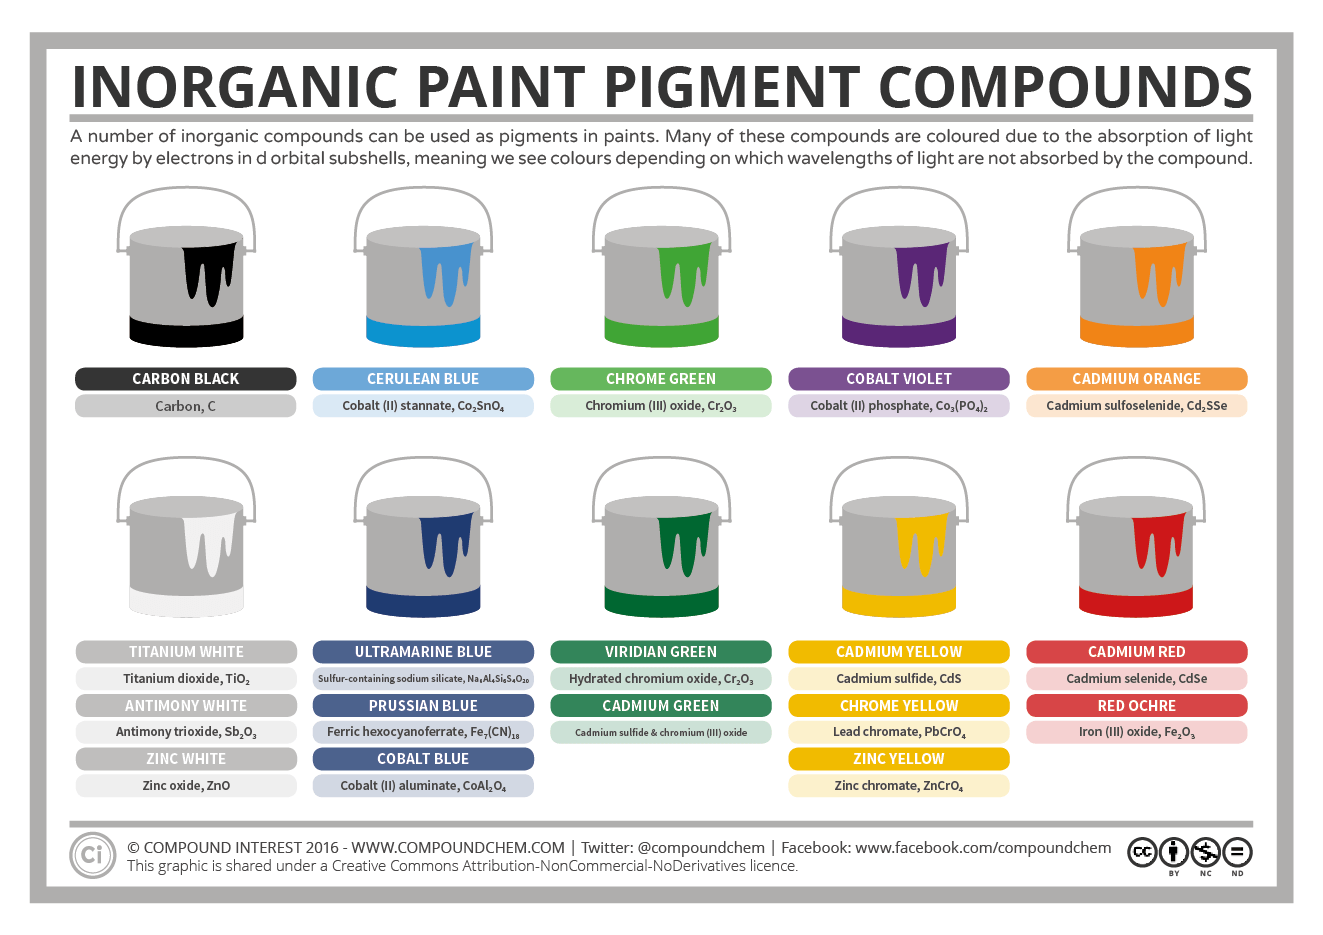 Chemistry Of Inorganic Paint Pigment Compounds Science